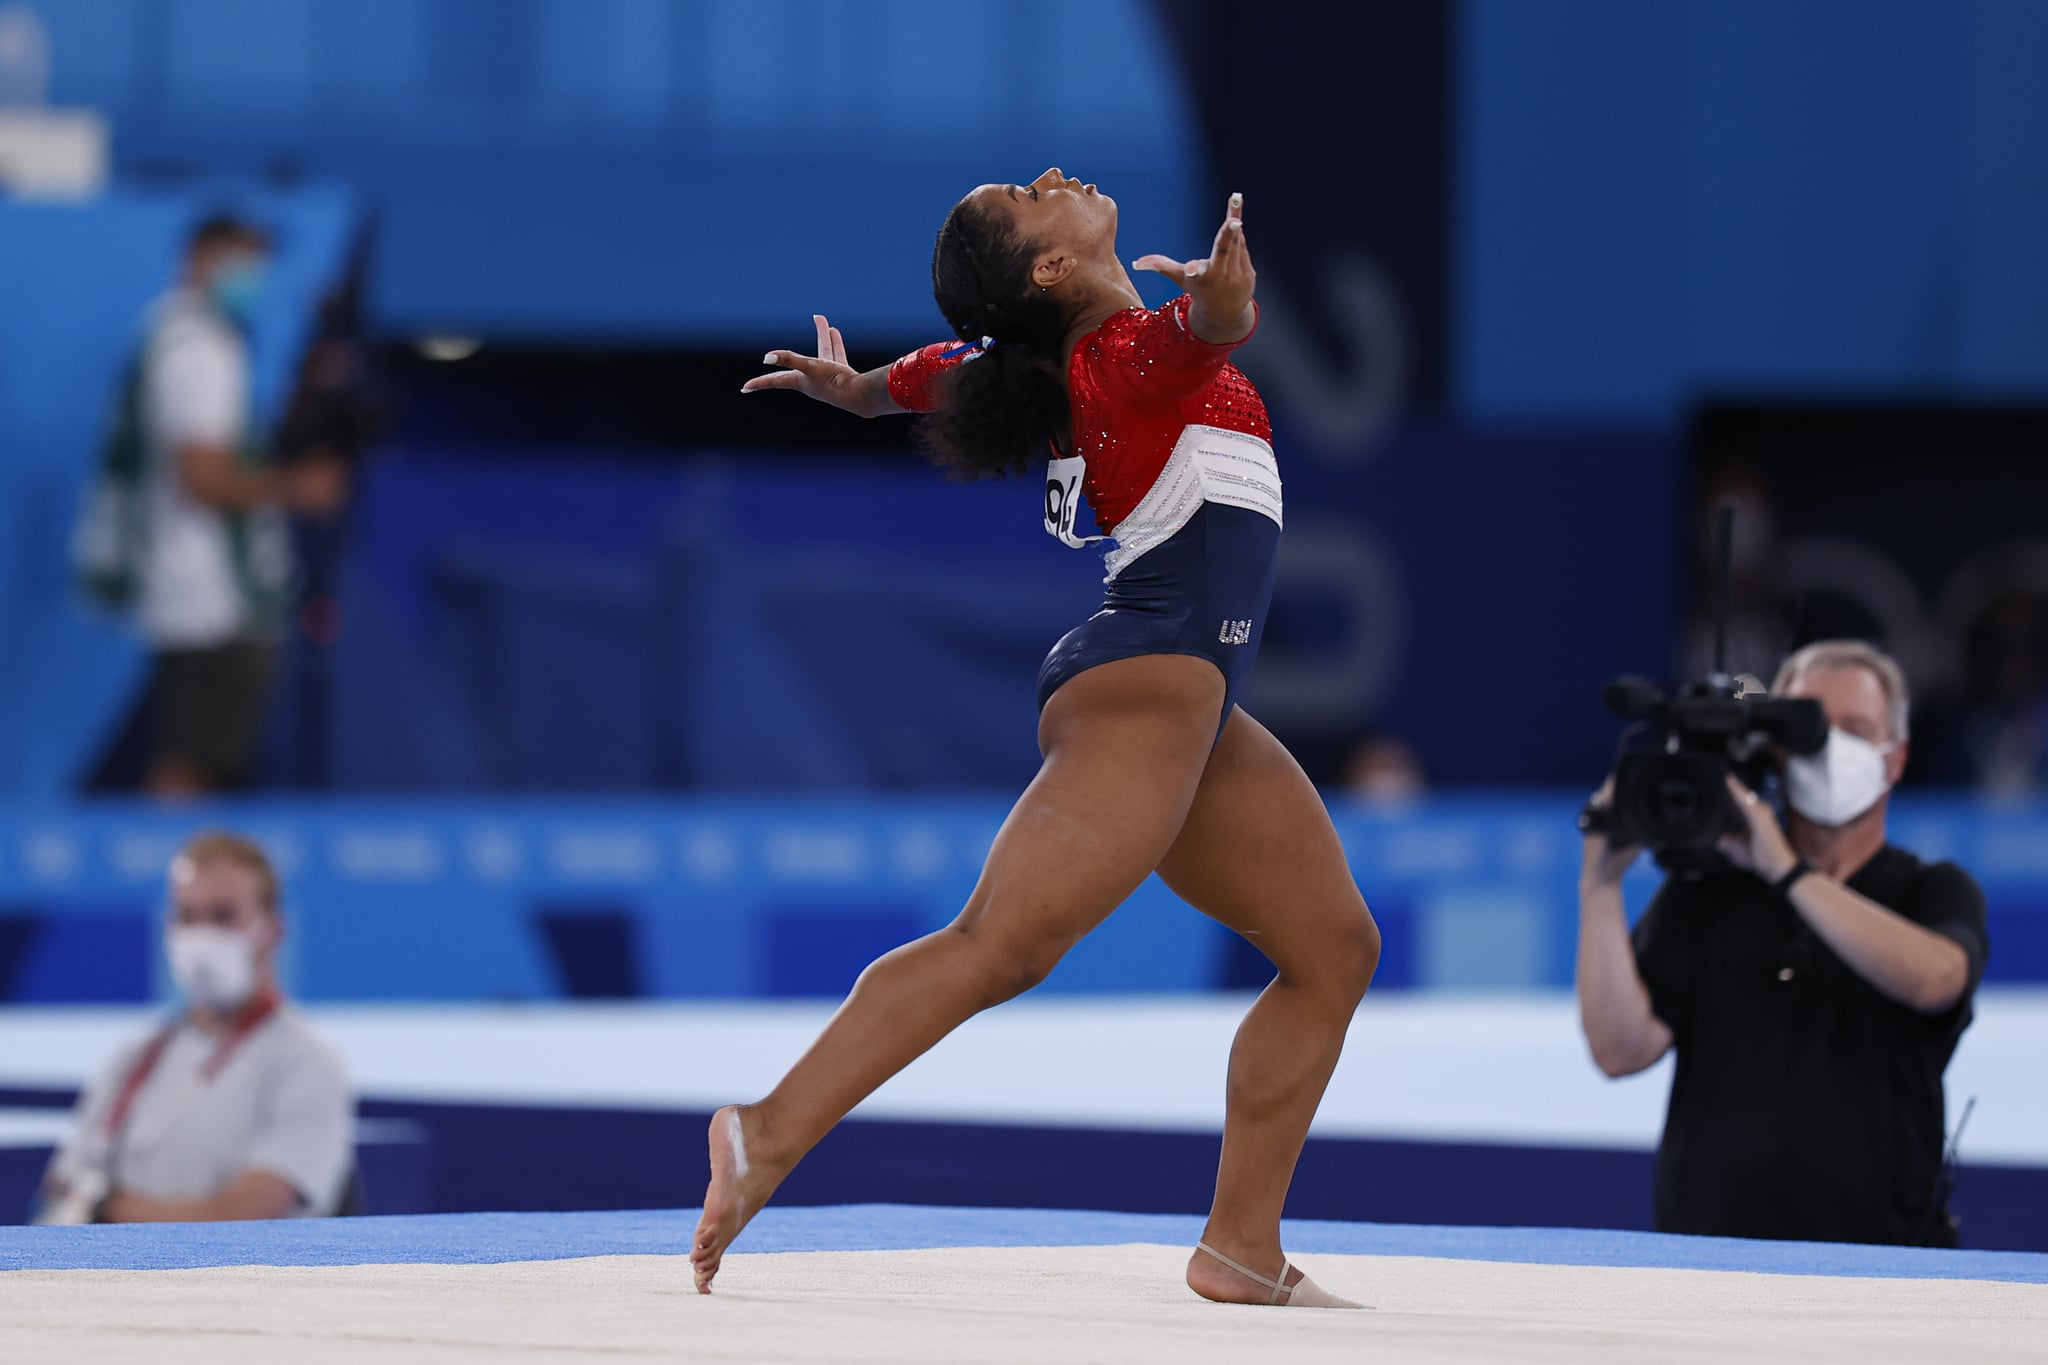 TOKYO, JAPAN - JULY 27: Jordan Chiles of Team United States competes in the floor exercise during the Women's Team Final on day four of the Tokyo 2020 Olympic Games at Ariake Gymnastics Centre on July 27, 2021 in Tokyo, Japan. (Photo by Fred Lee/Getty Images)